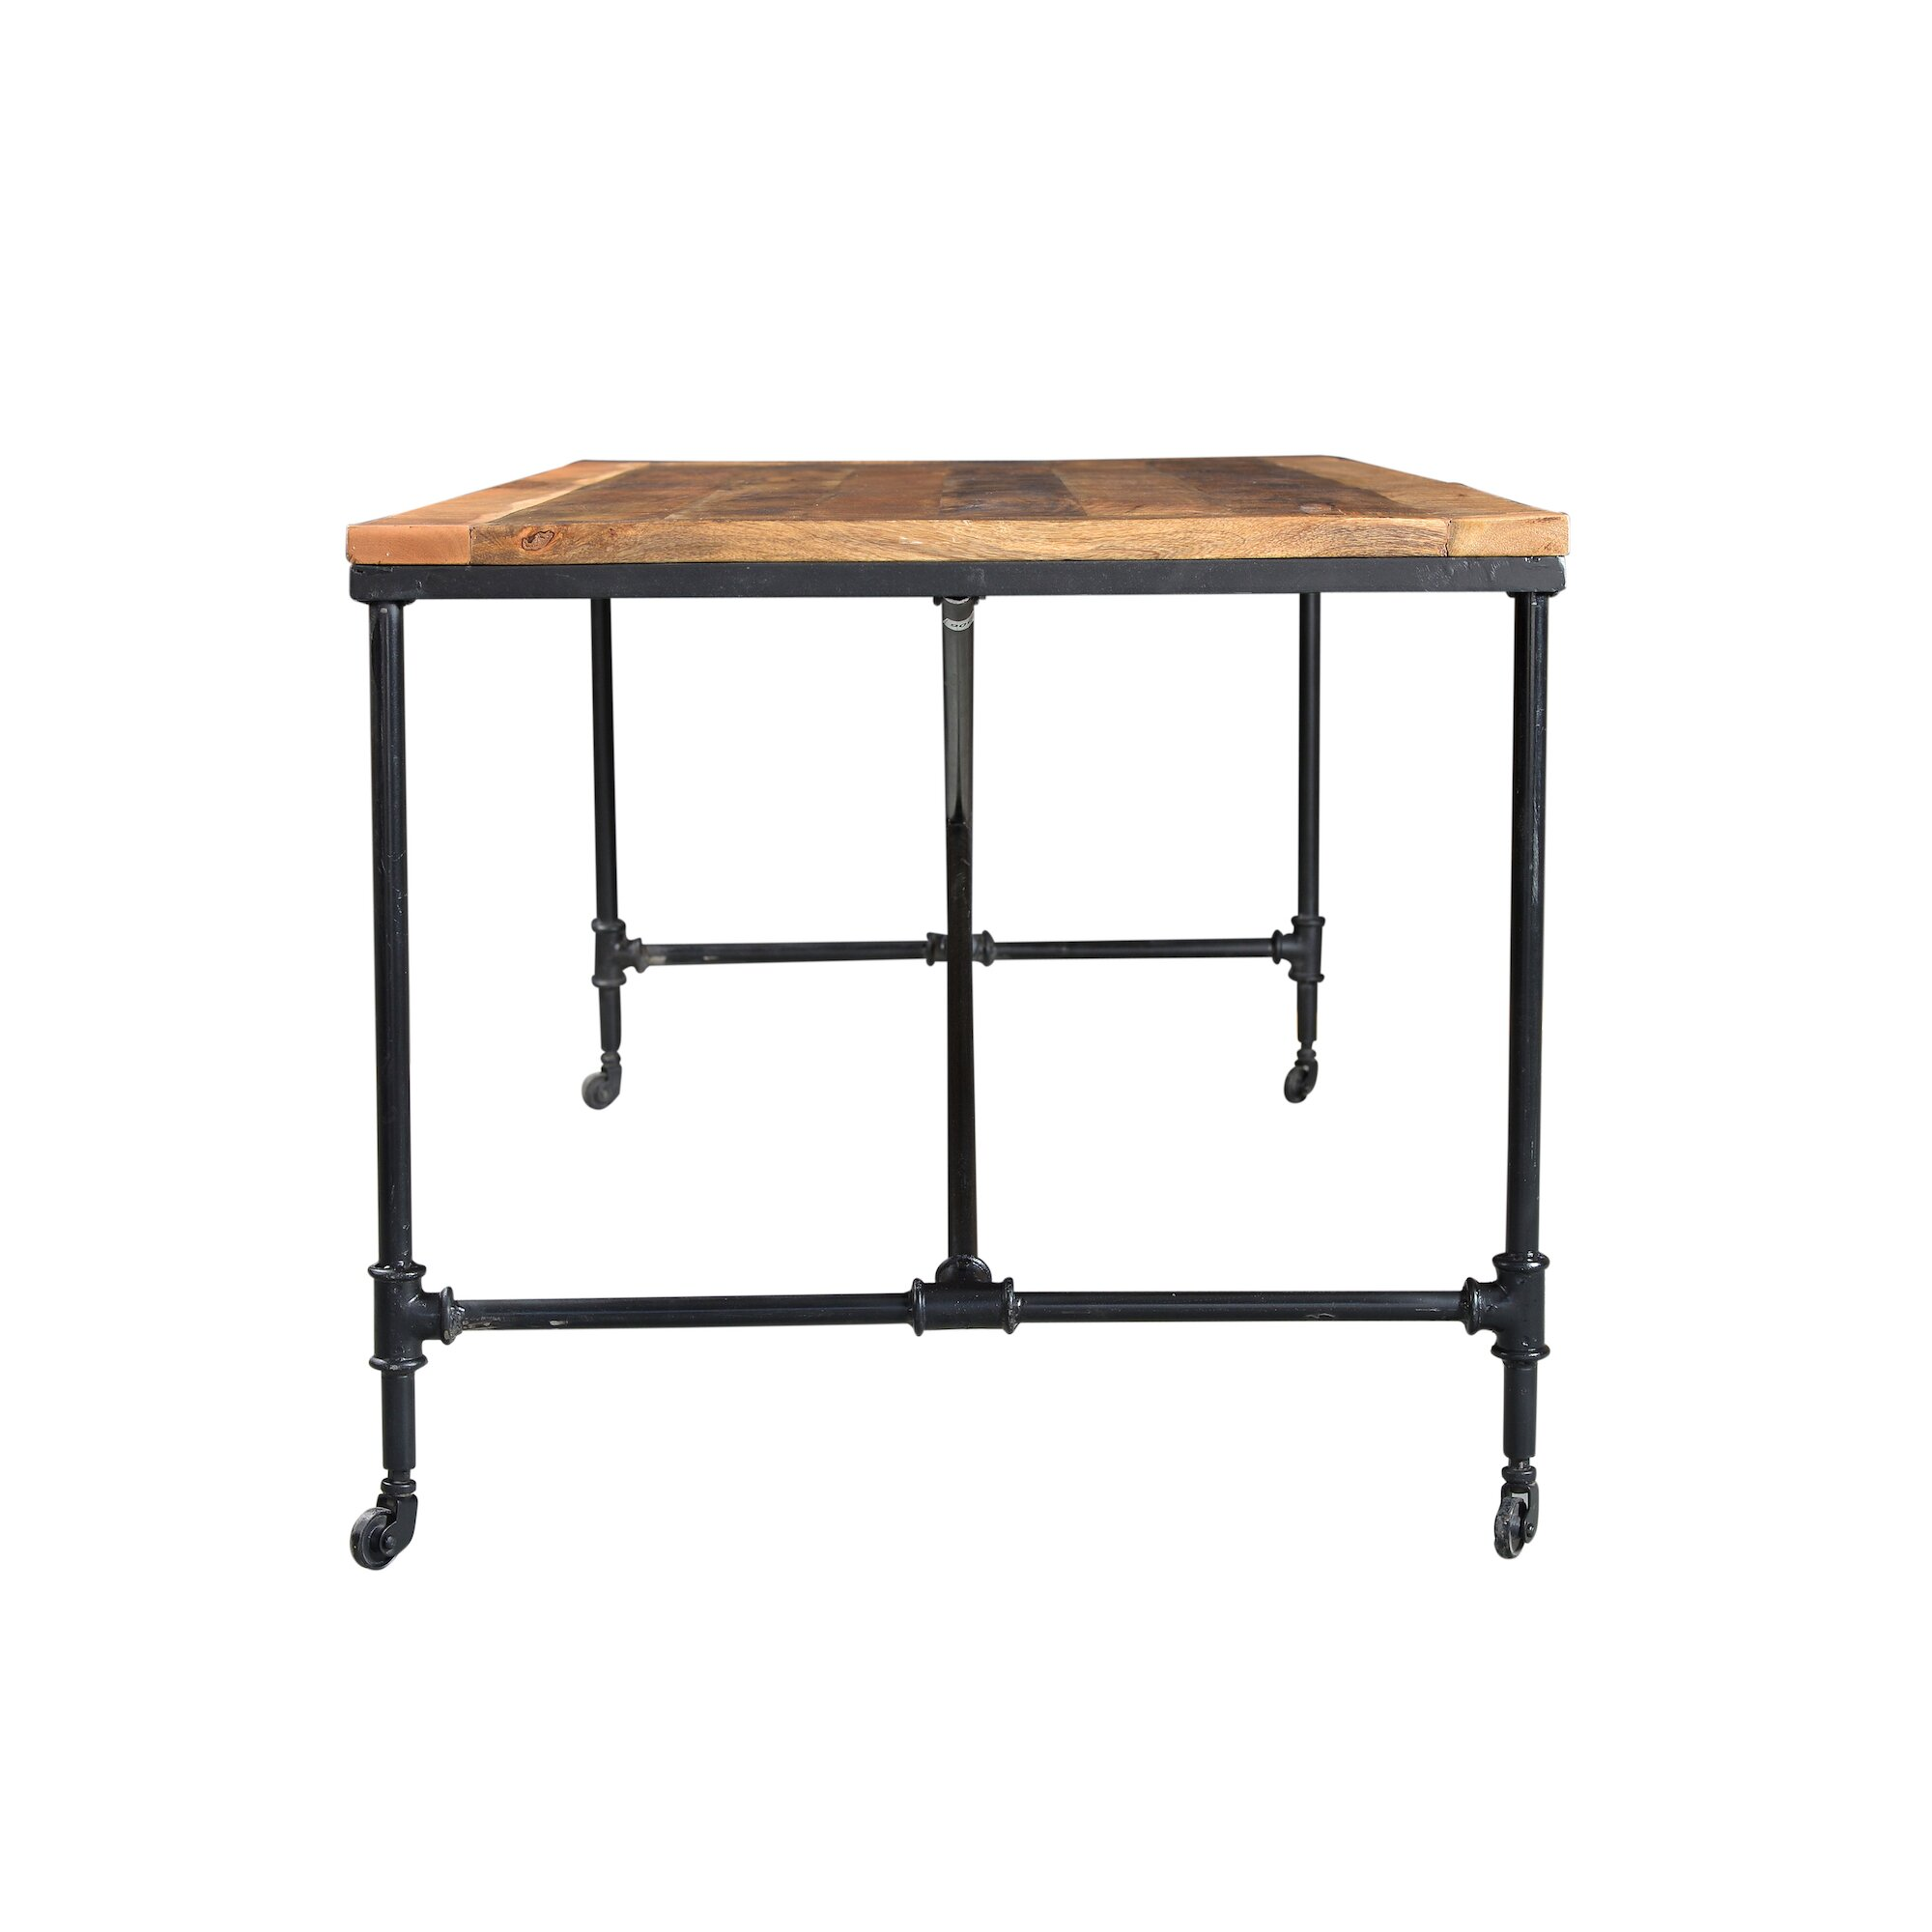 Timbergirl dining table reviews wayfair for Wayfair dining table